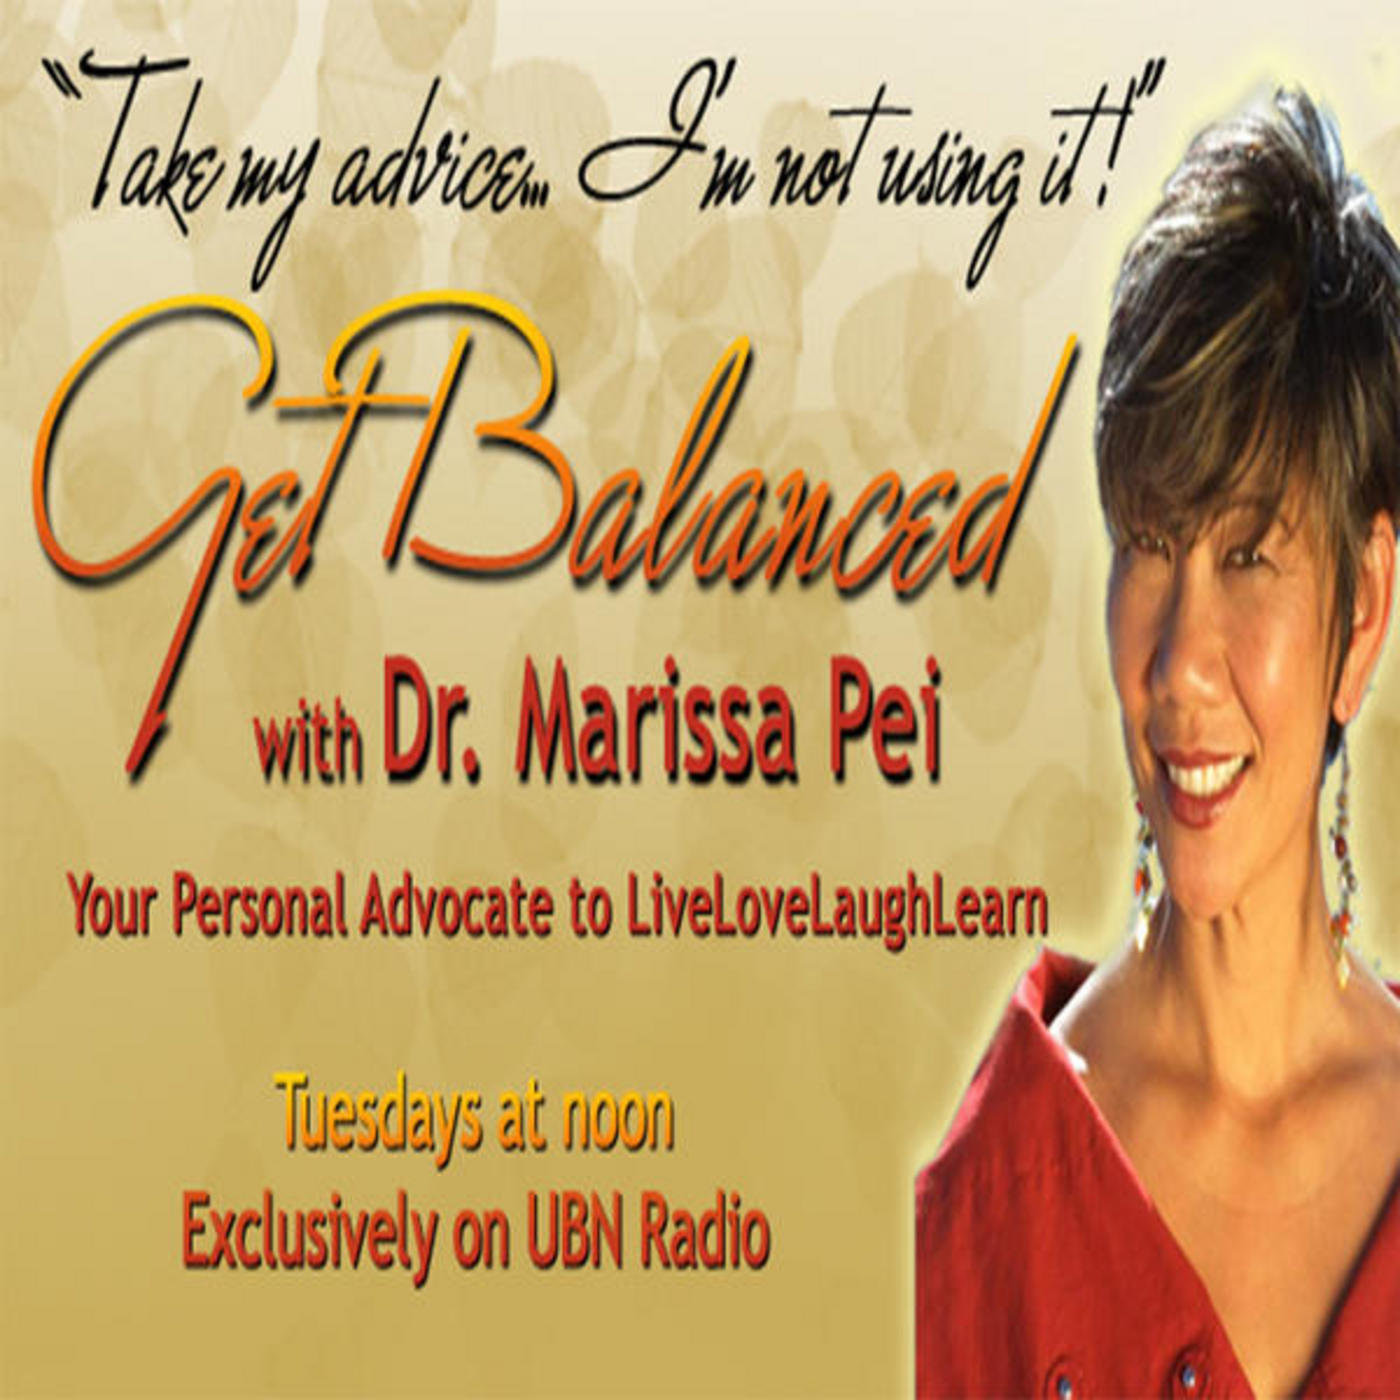 Dr. Marissa helps Callers Bring Balance to their Authentic Self